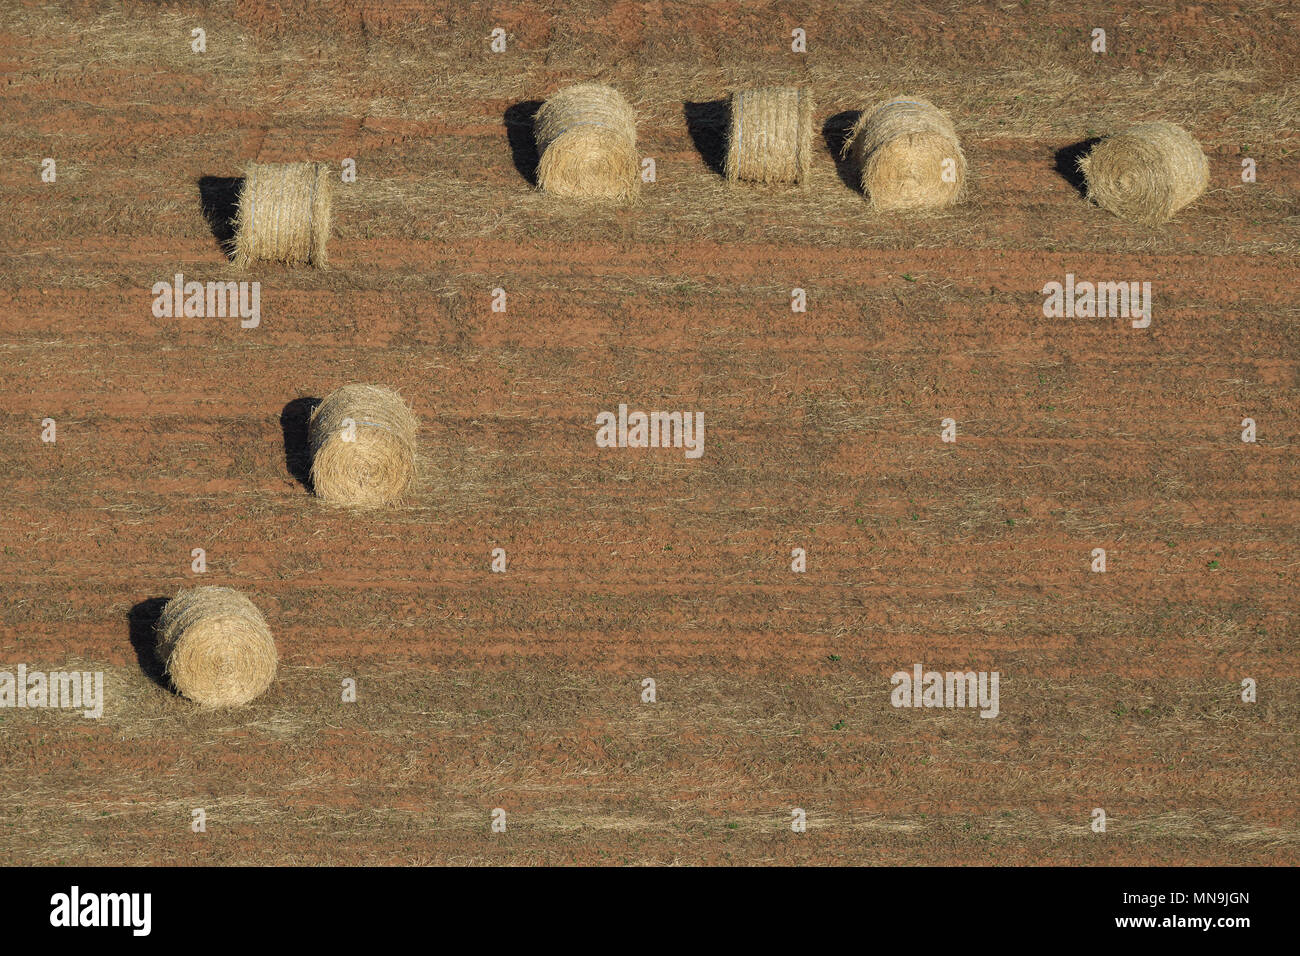 Royalty-Free Stock Photo Download Landscape With Hay Bales, Mallorca, Spain Stock Photo - Image of growth, landscaped: 55986282 - Stock Image